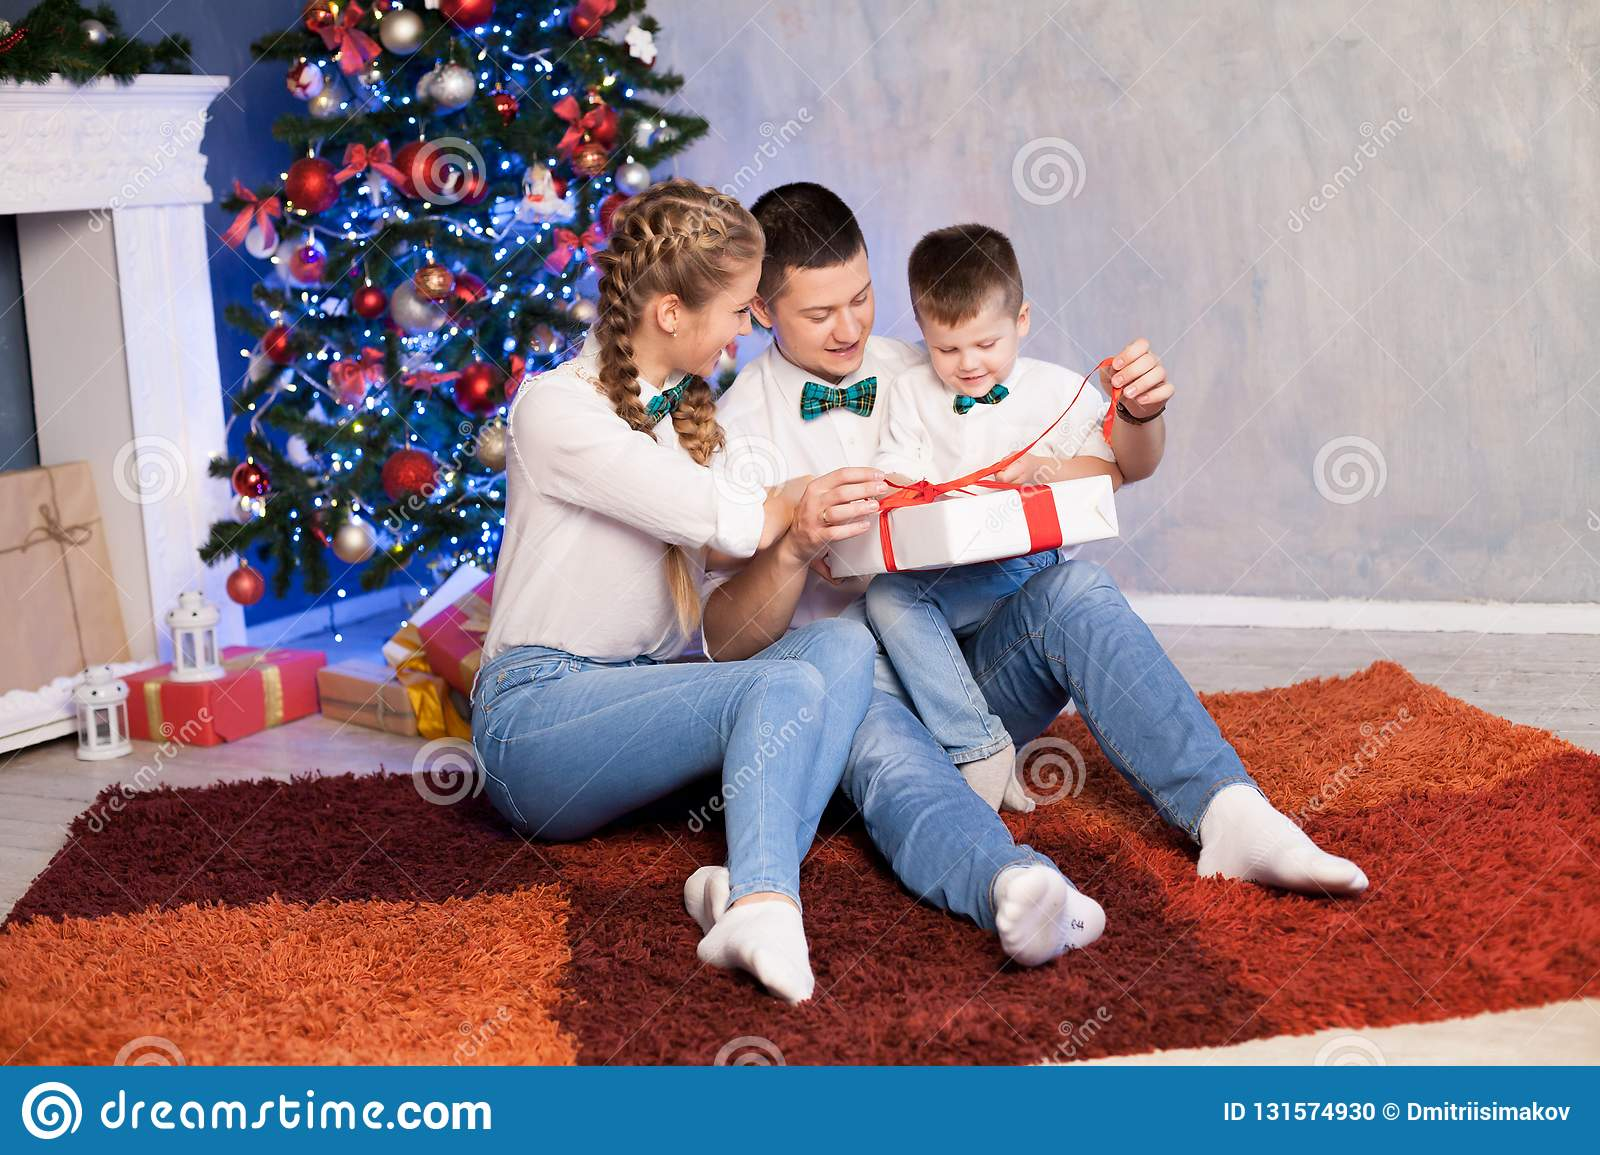 Christmas Gifts For Mom From Son.Mom Dad And Little Son Christmas New Year And Christmas